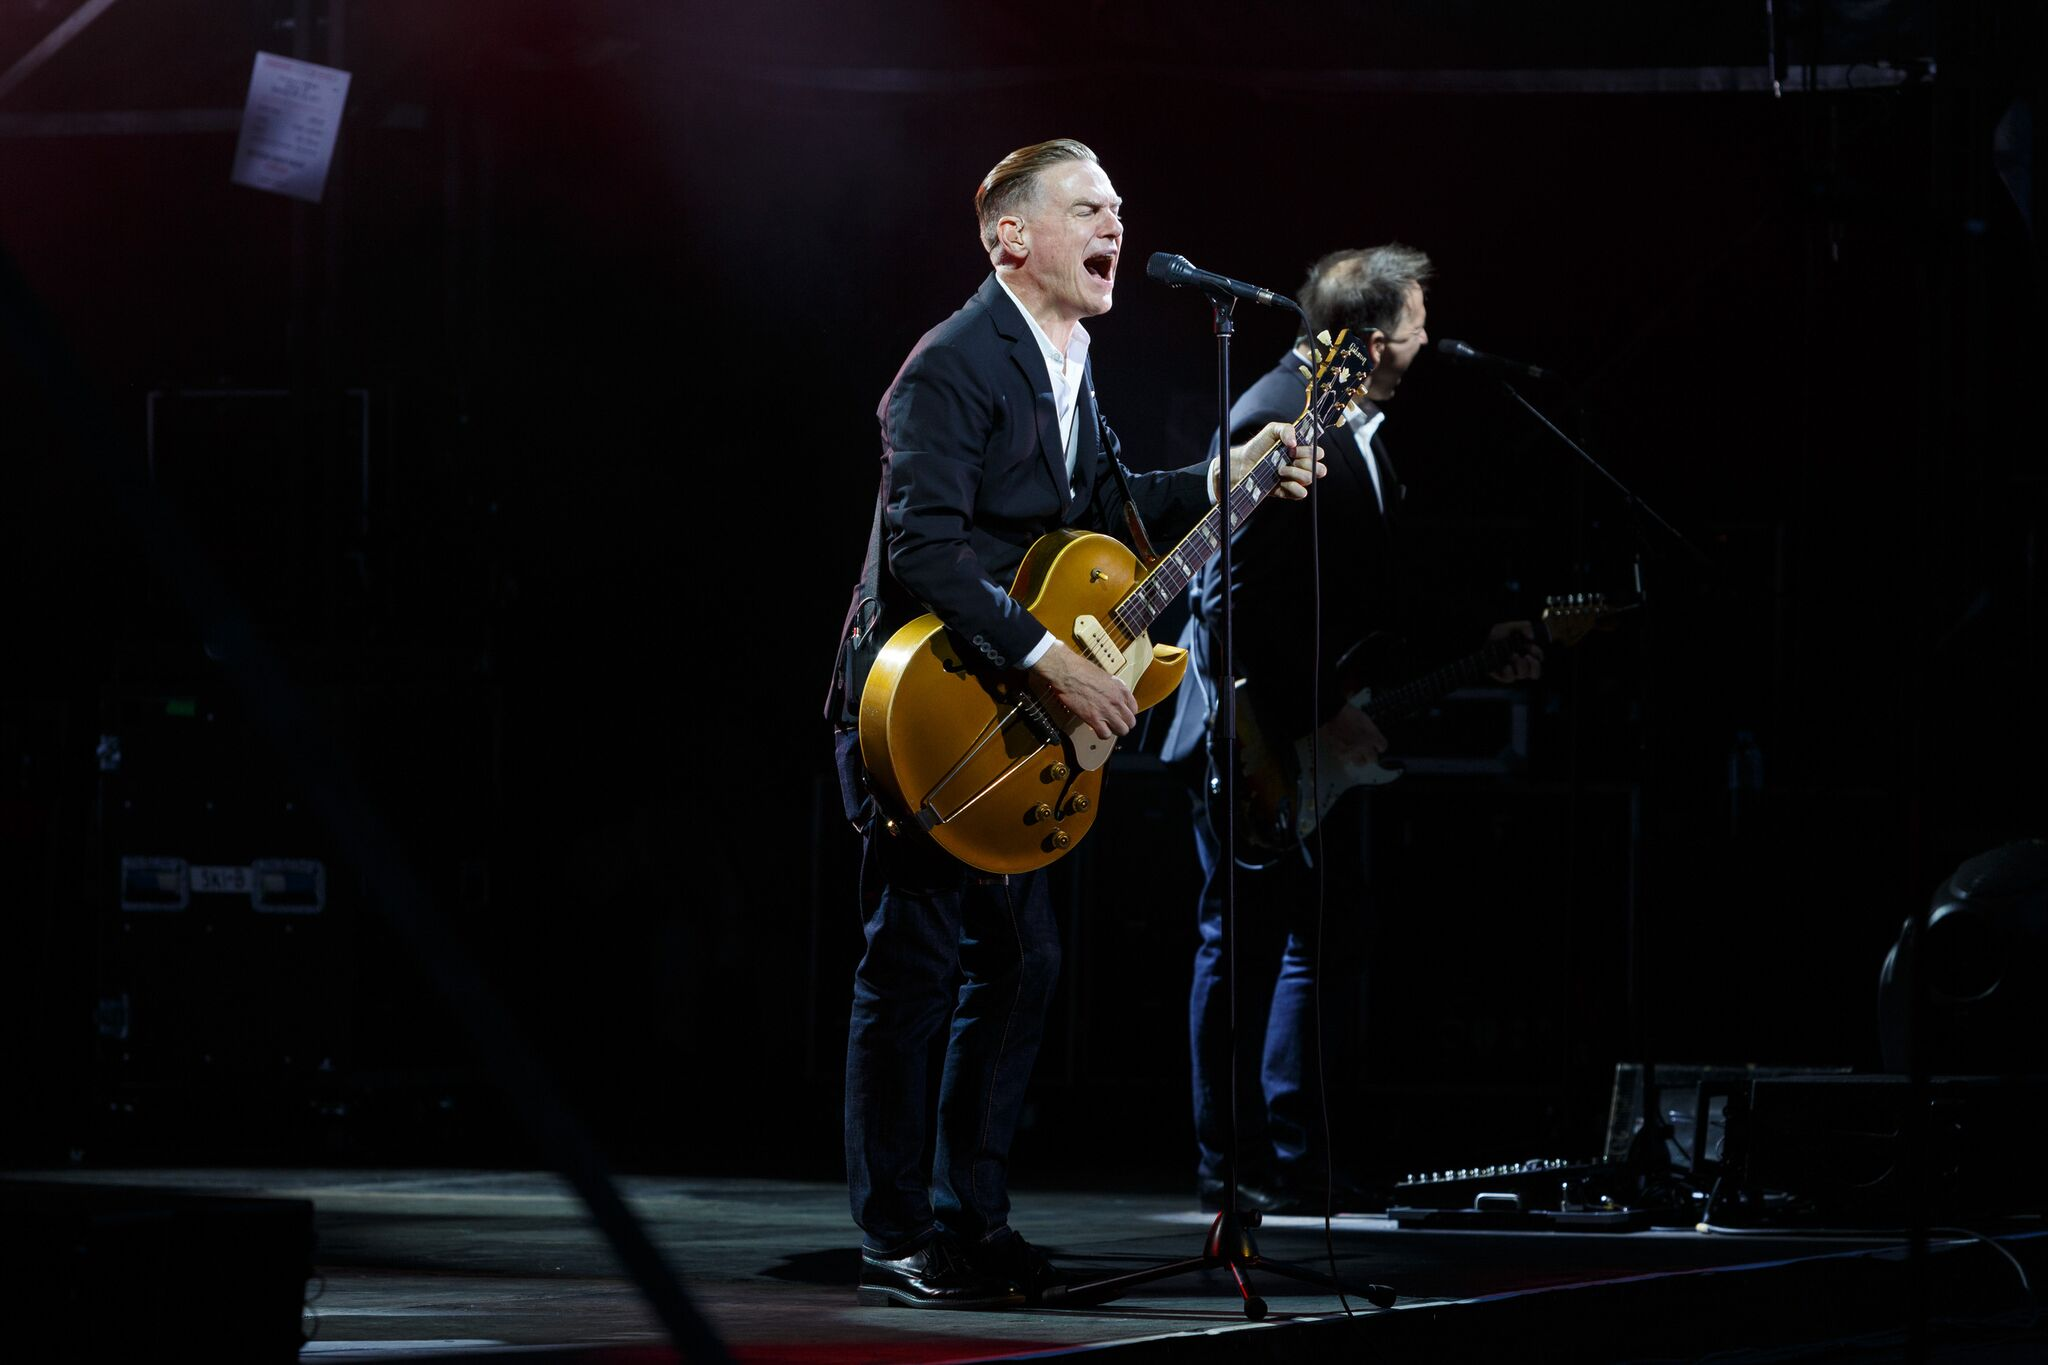 Canadian rocker Bryan Adams in full swing.